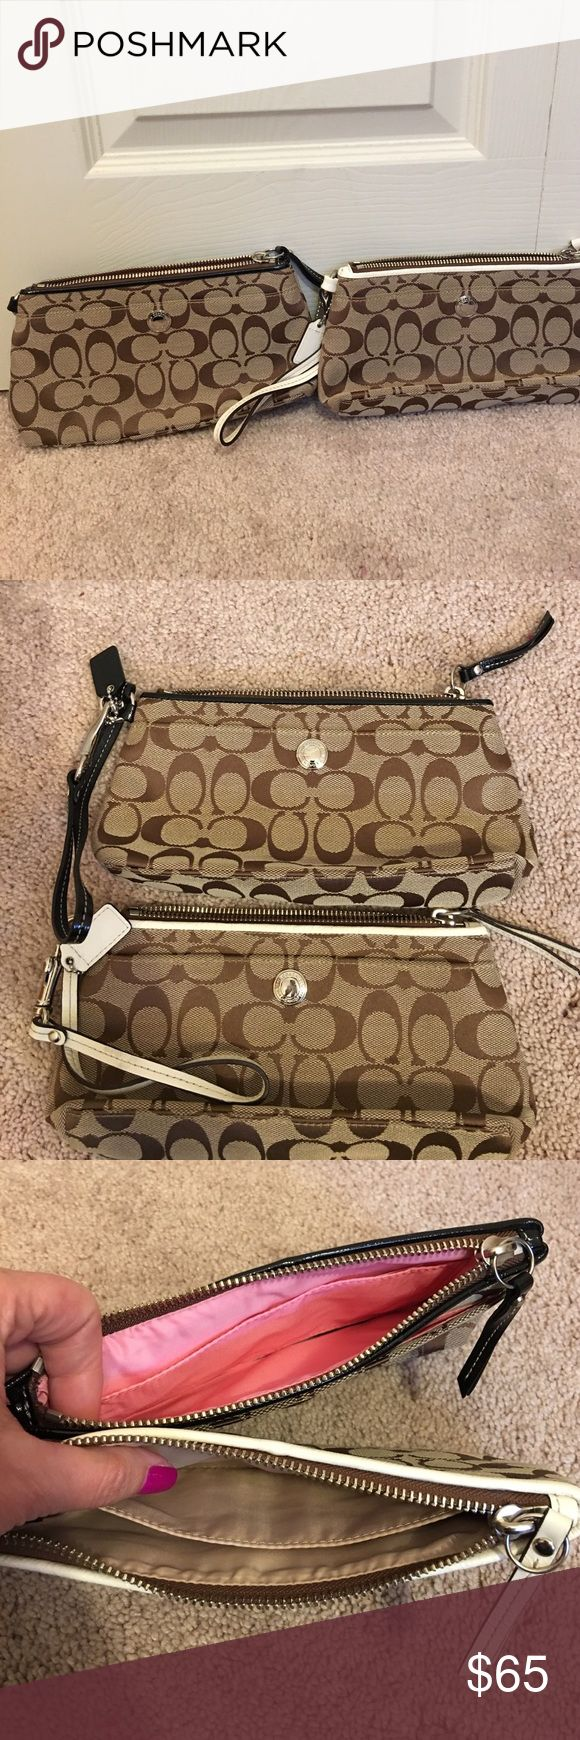 Coach clutched 1- Black and Tan Coach clutch with pink interior. Never used  1- white and tan clutch with cream/light tan interior. Never used.  Selling both for $65 or $45 each. Make me an offer :) Coach Bags Clutches & Wristlets